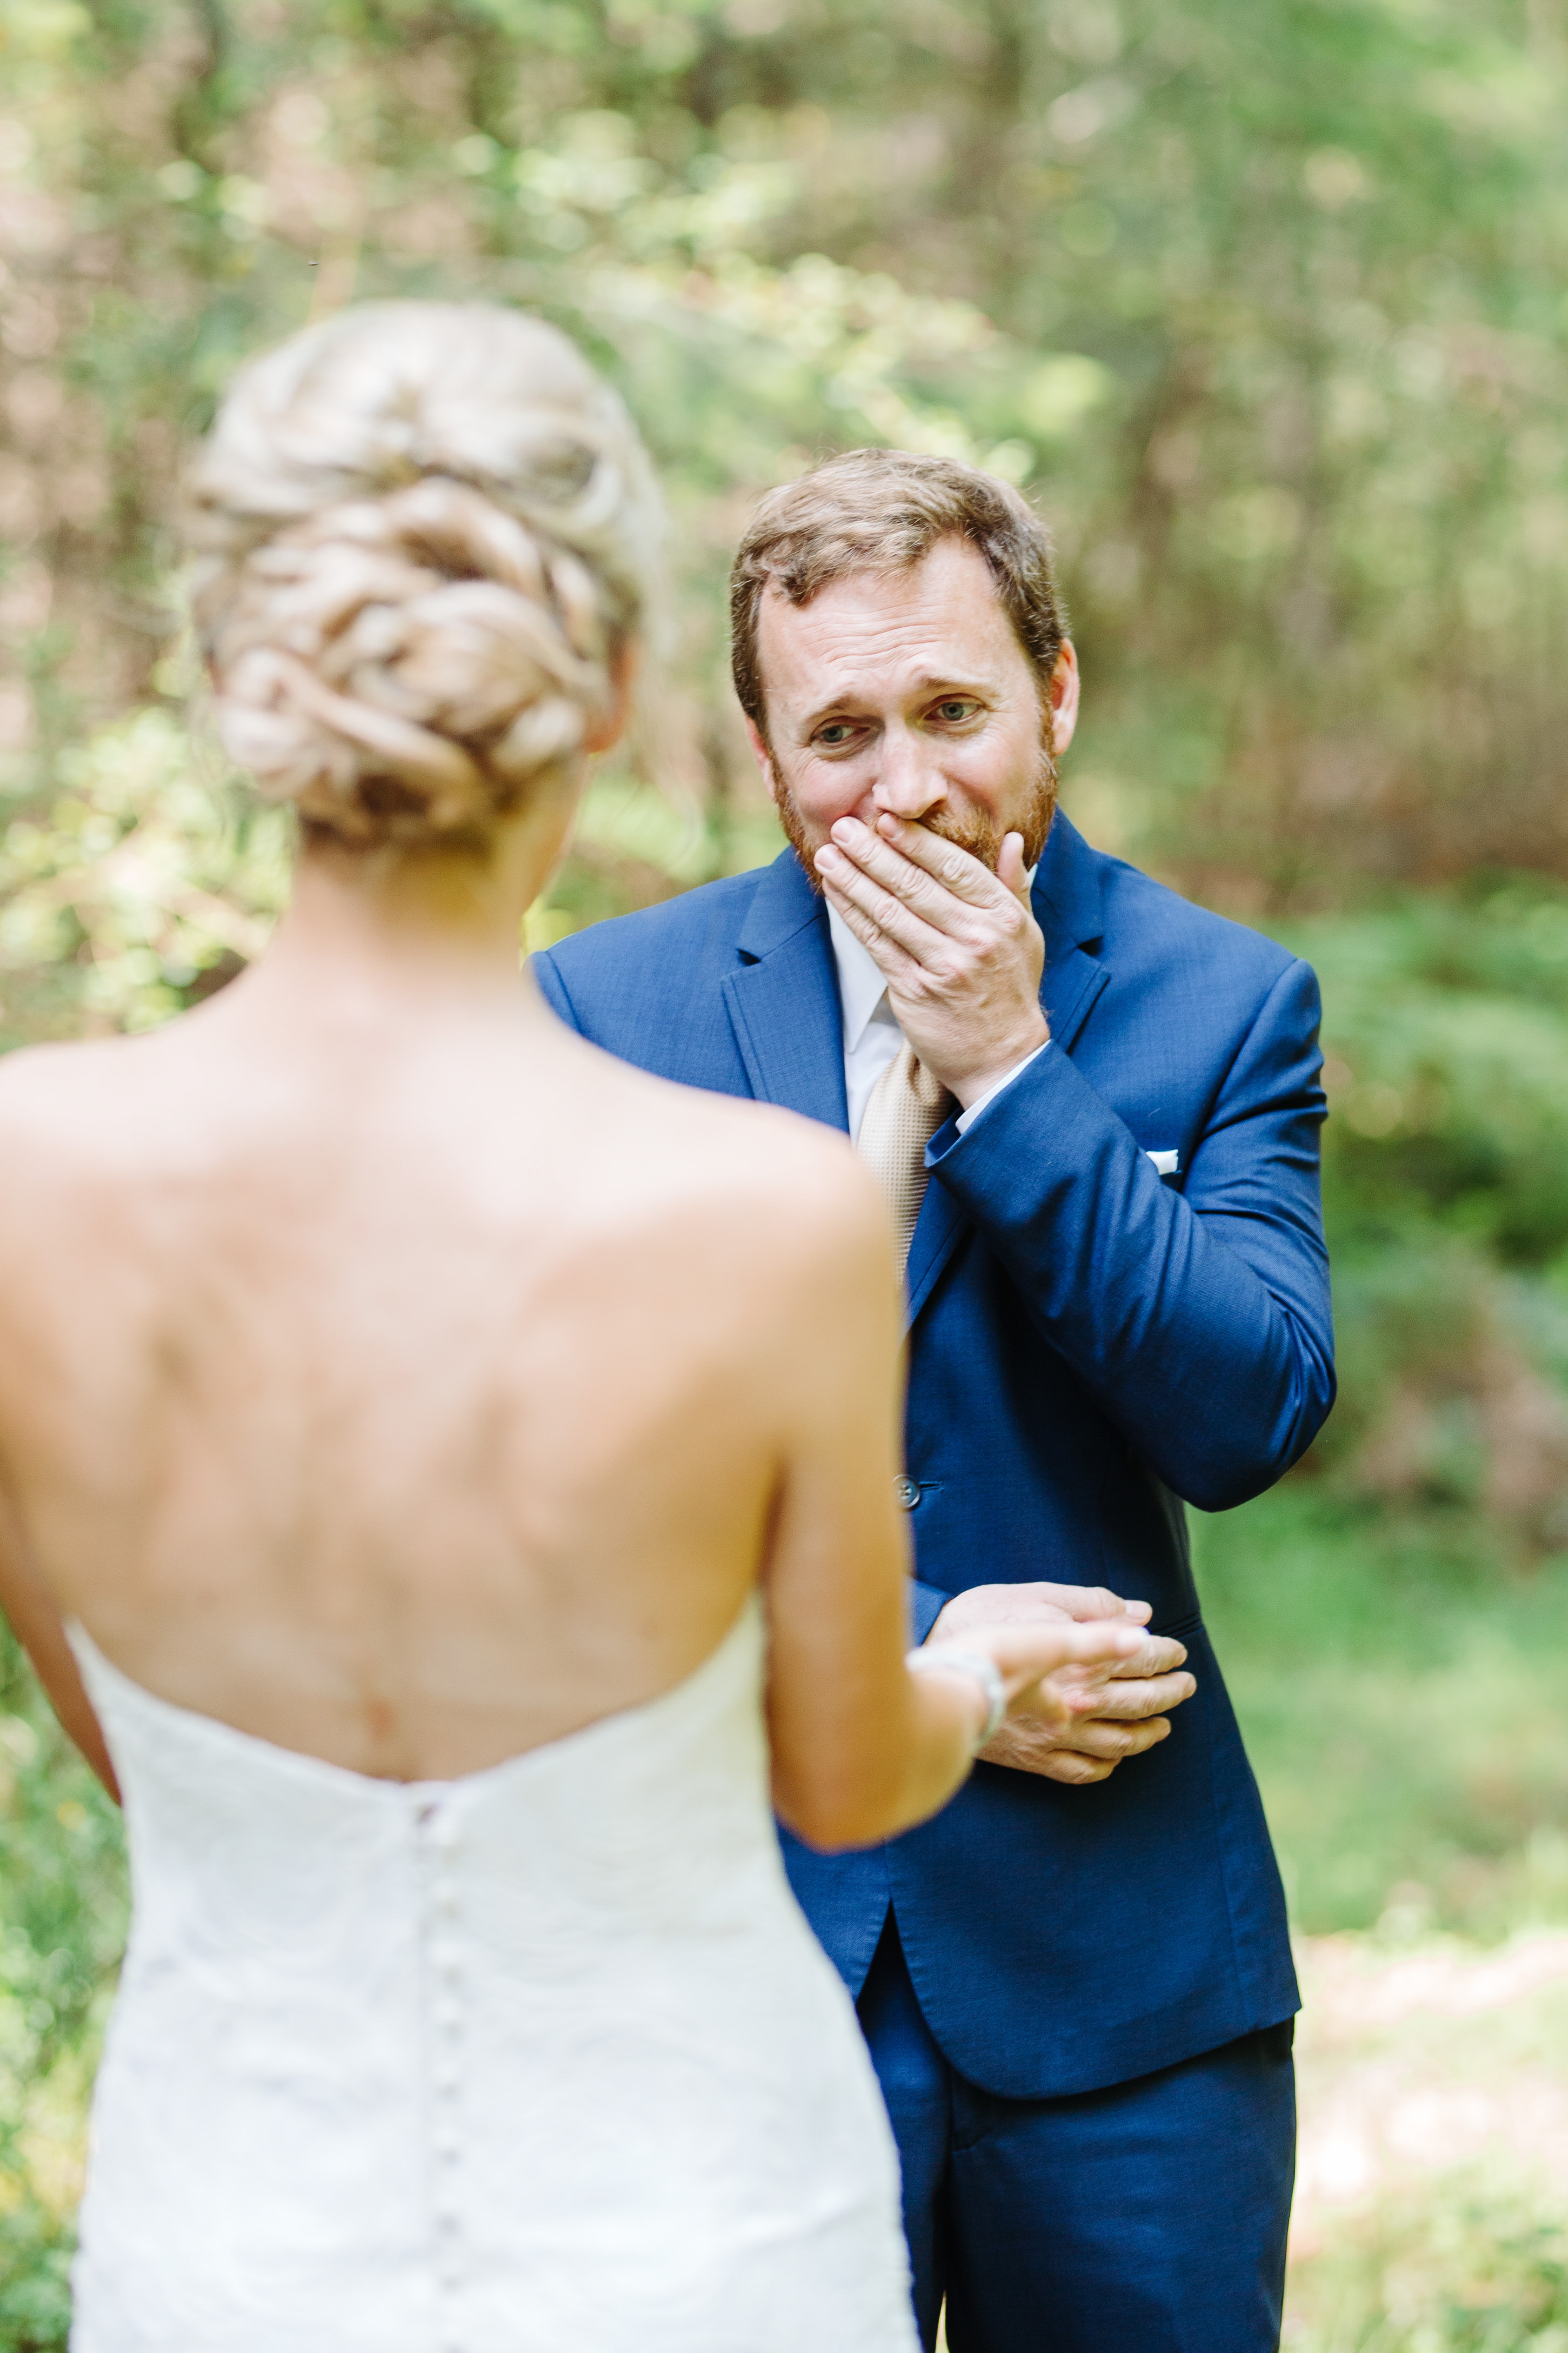 groom-reacts-during-first-look-photo-by-cameron-zegers-photography